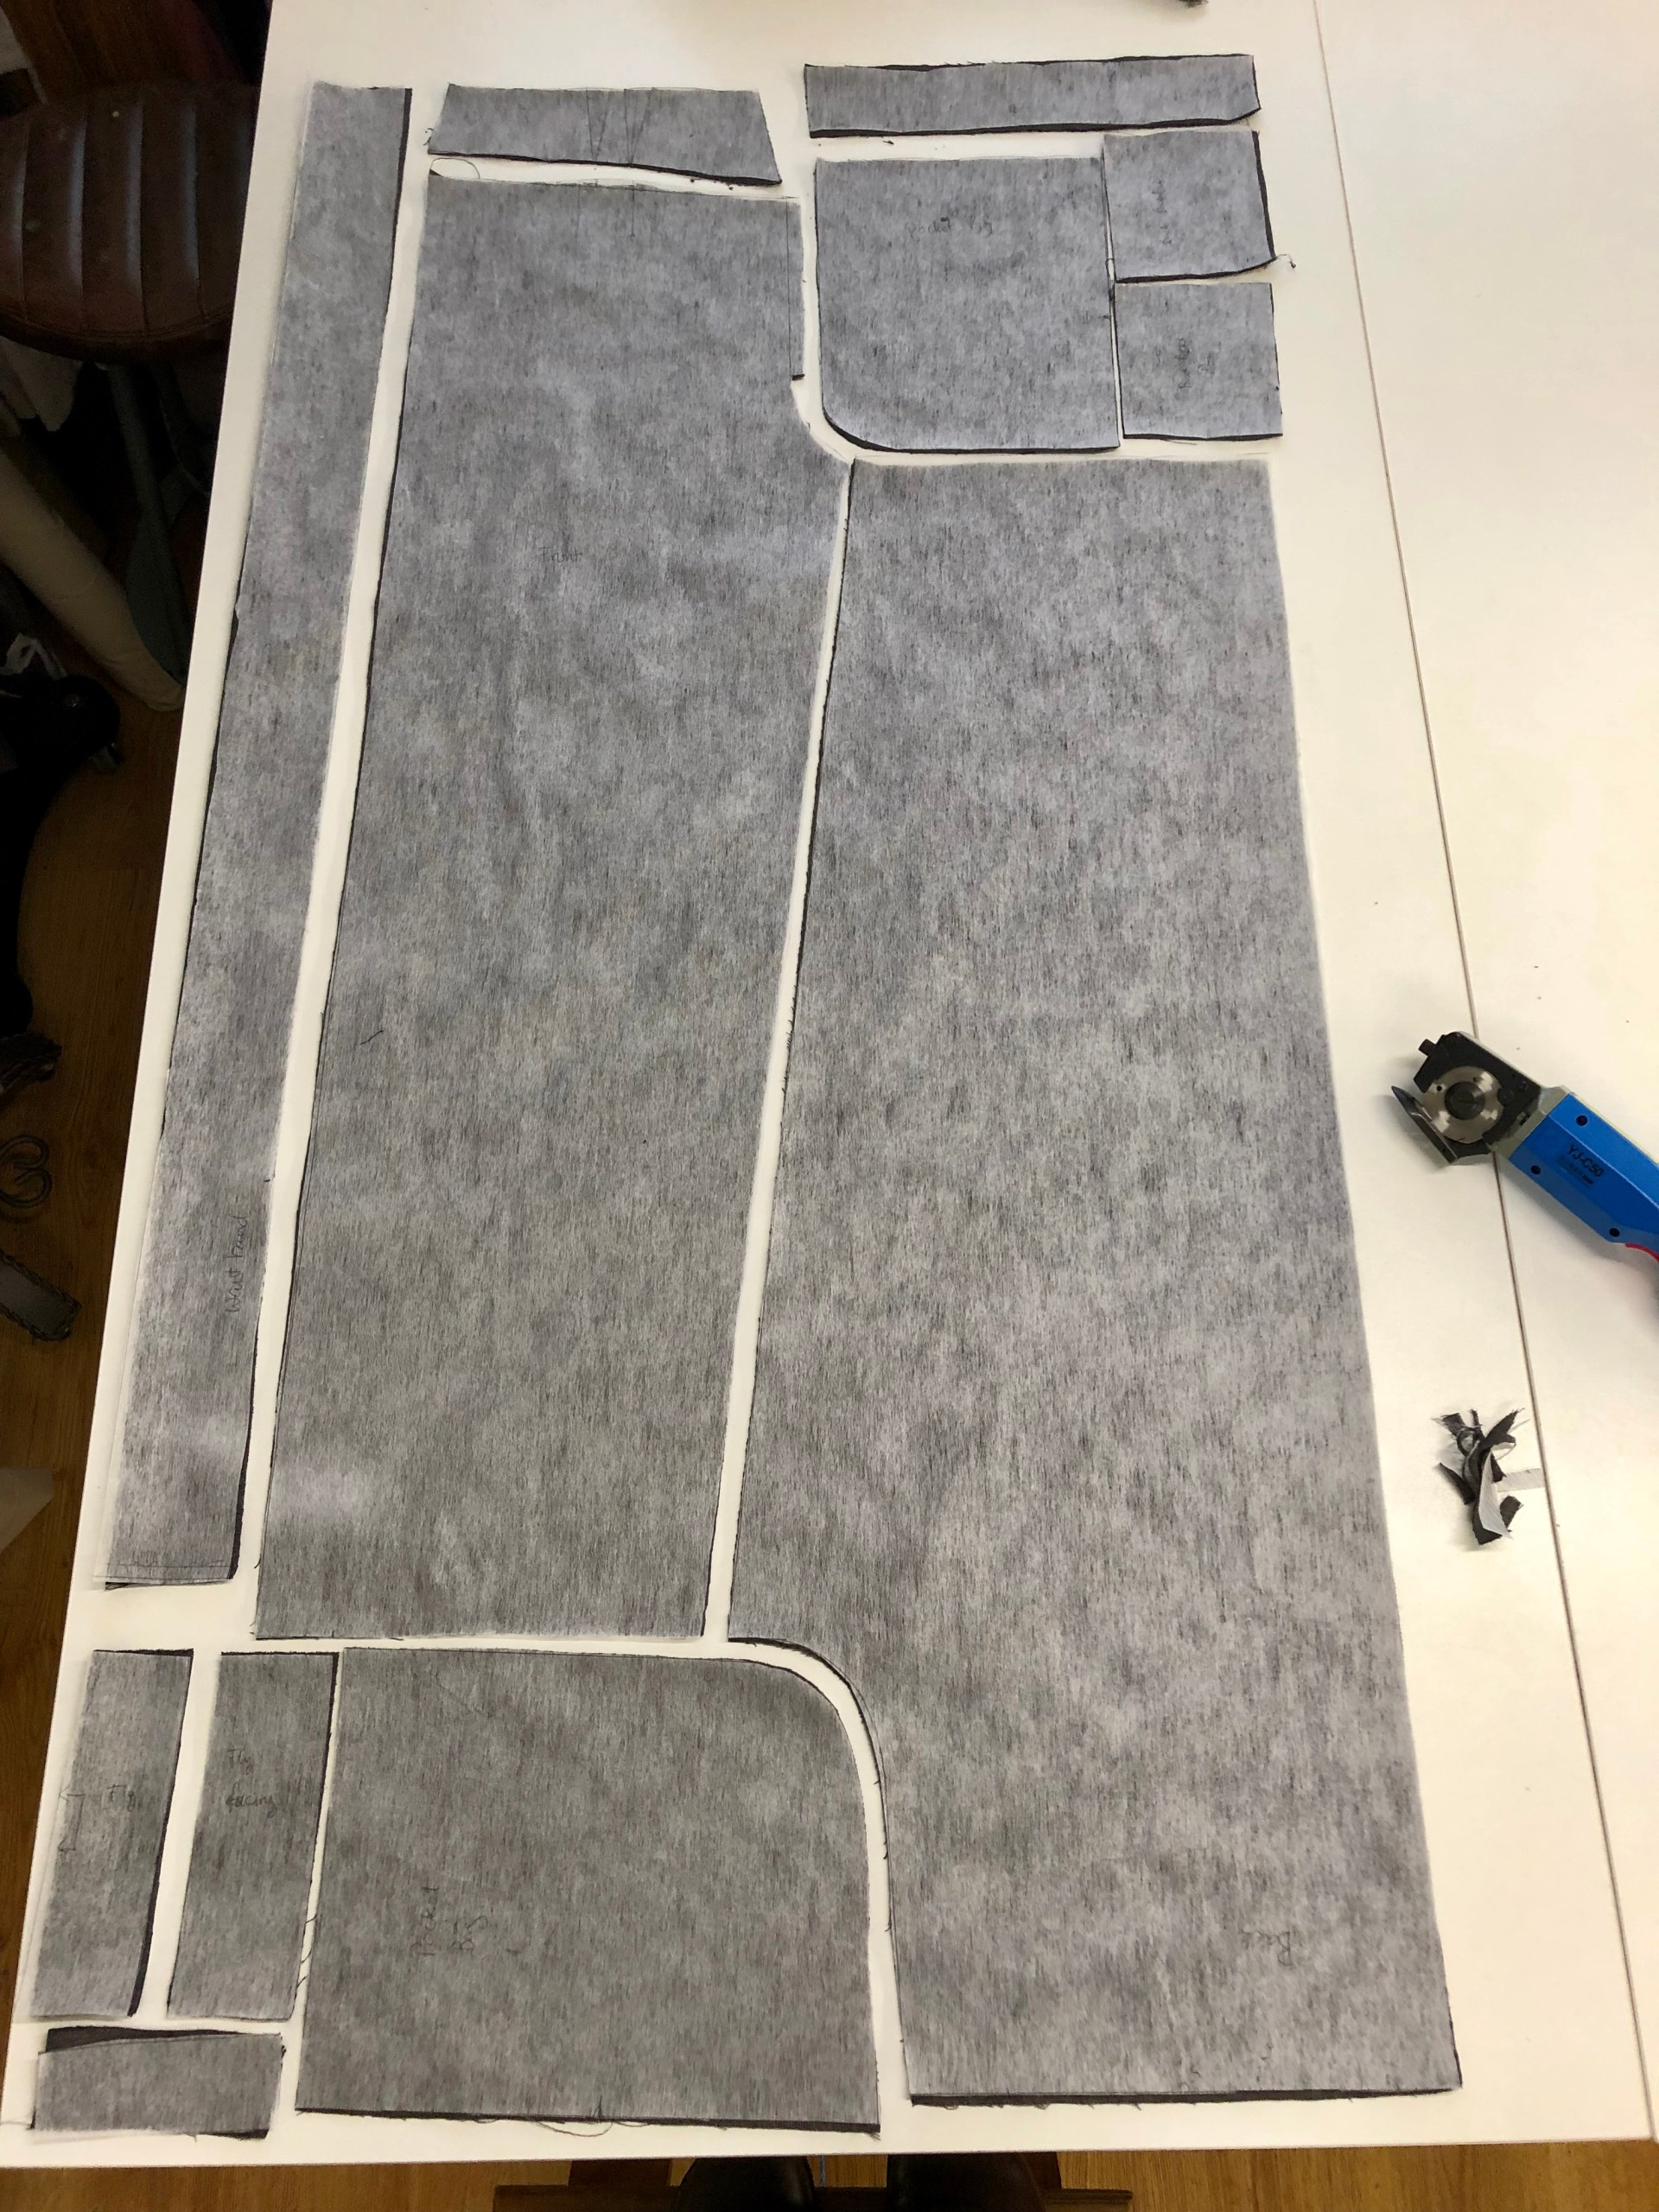 The pieces for a pair of zero waste trousers are shown laid out on a table. A regular pattern has been and modified so the pieces fit on a single rectangle of fabric. Tiny leftover scraps are shown.